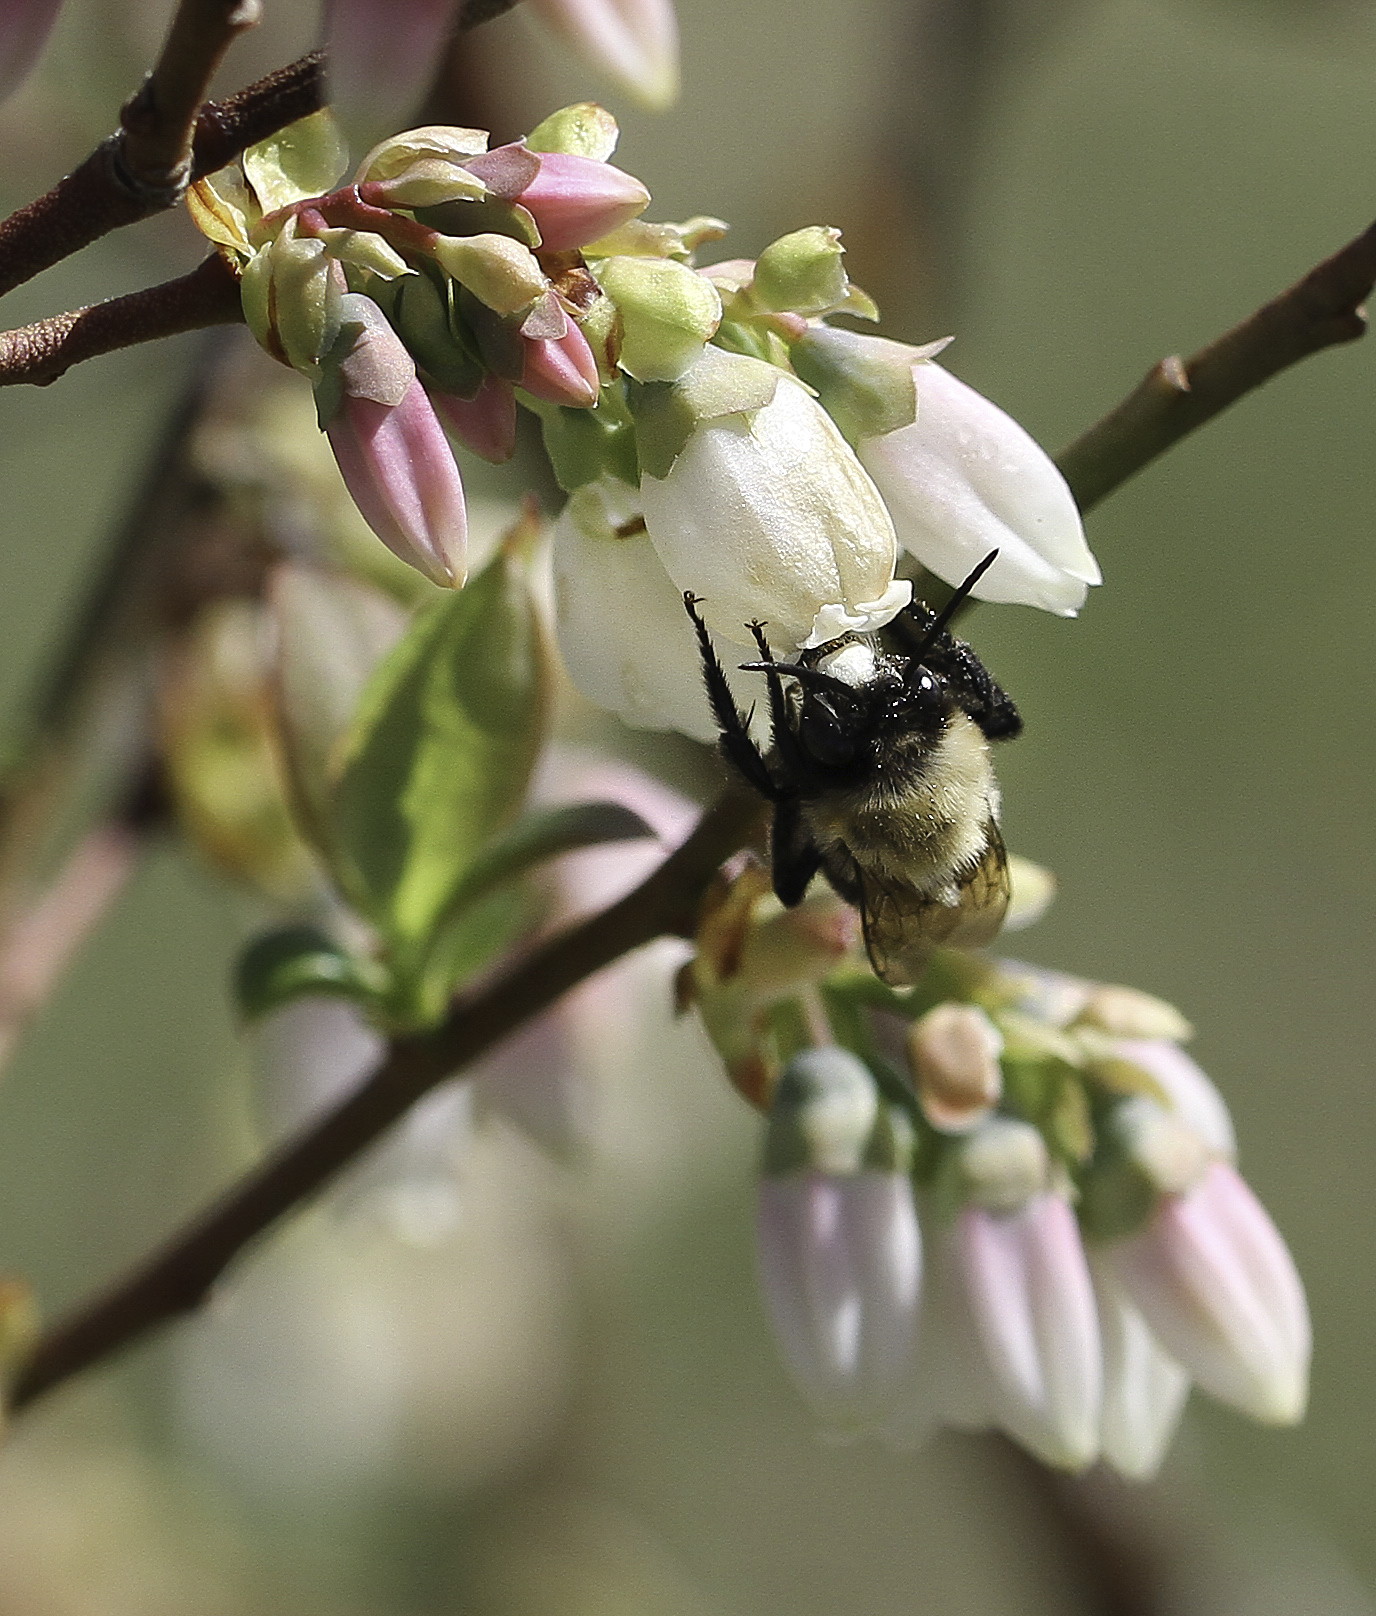 Southeastern blueberry bee foraging on blueberry bloom. Photo by Debbie Roos.